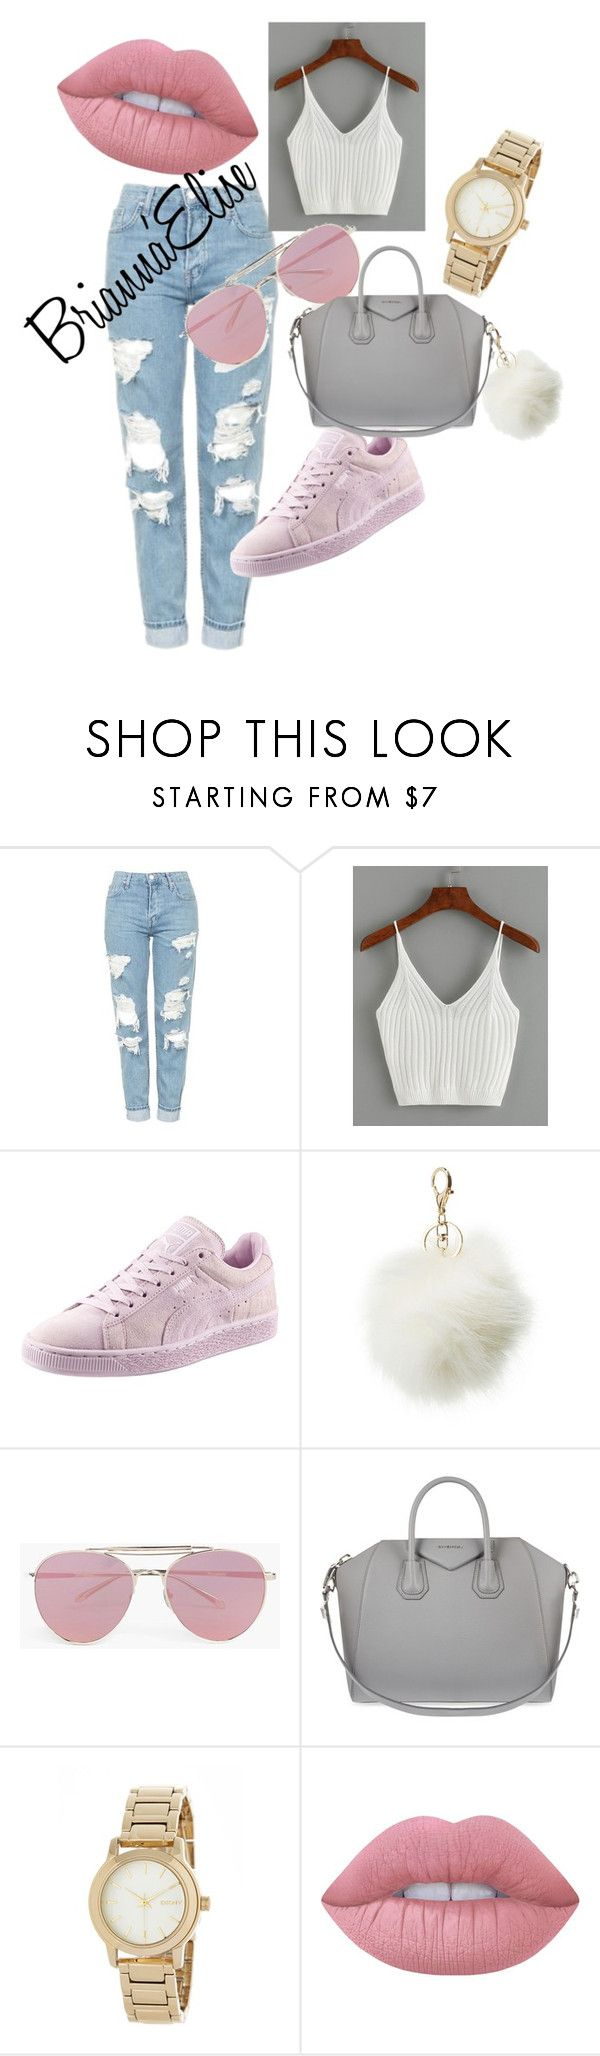 """Comfortable Day Time Look"" by bmitchell1836 ❤ liked on Polyvore featuring Topshop, Puma, Charlotte Russe, Boohoo, Givenchy, DKNY and Lime Crime"